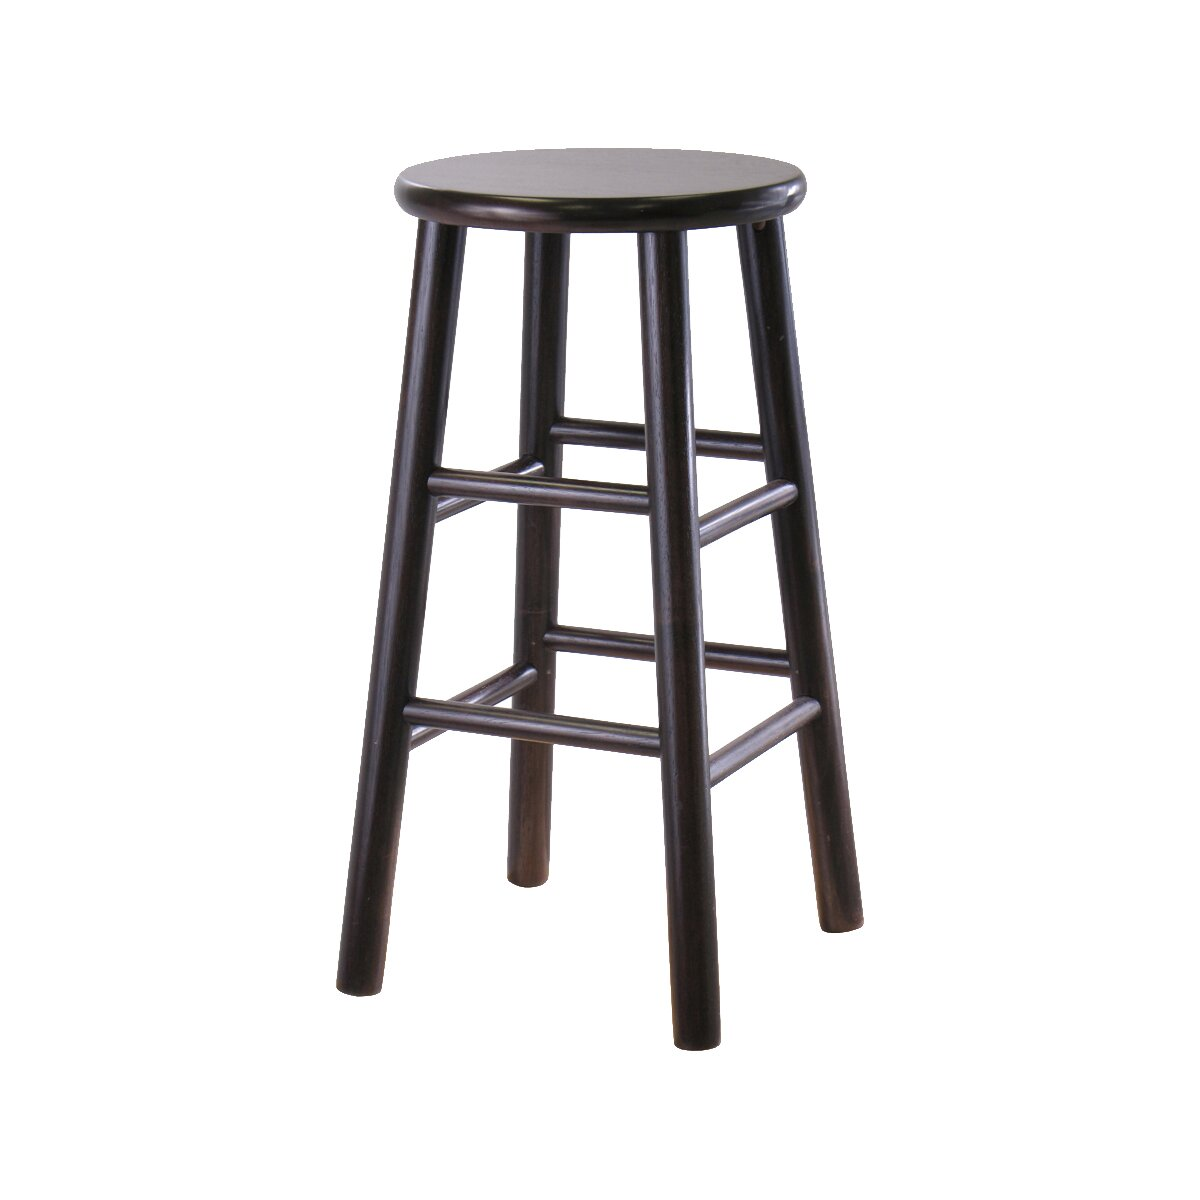 Winsome espresso 24 bar stool reviews wayfair for 24 inch bar stools